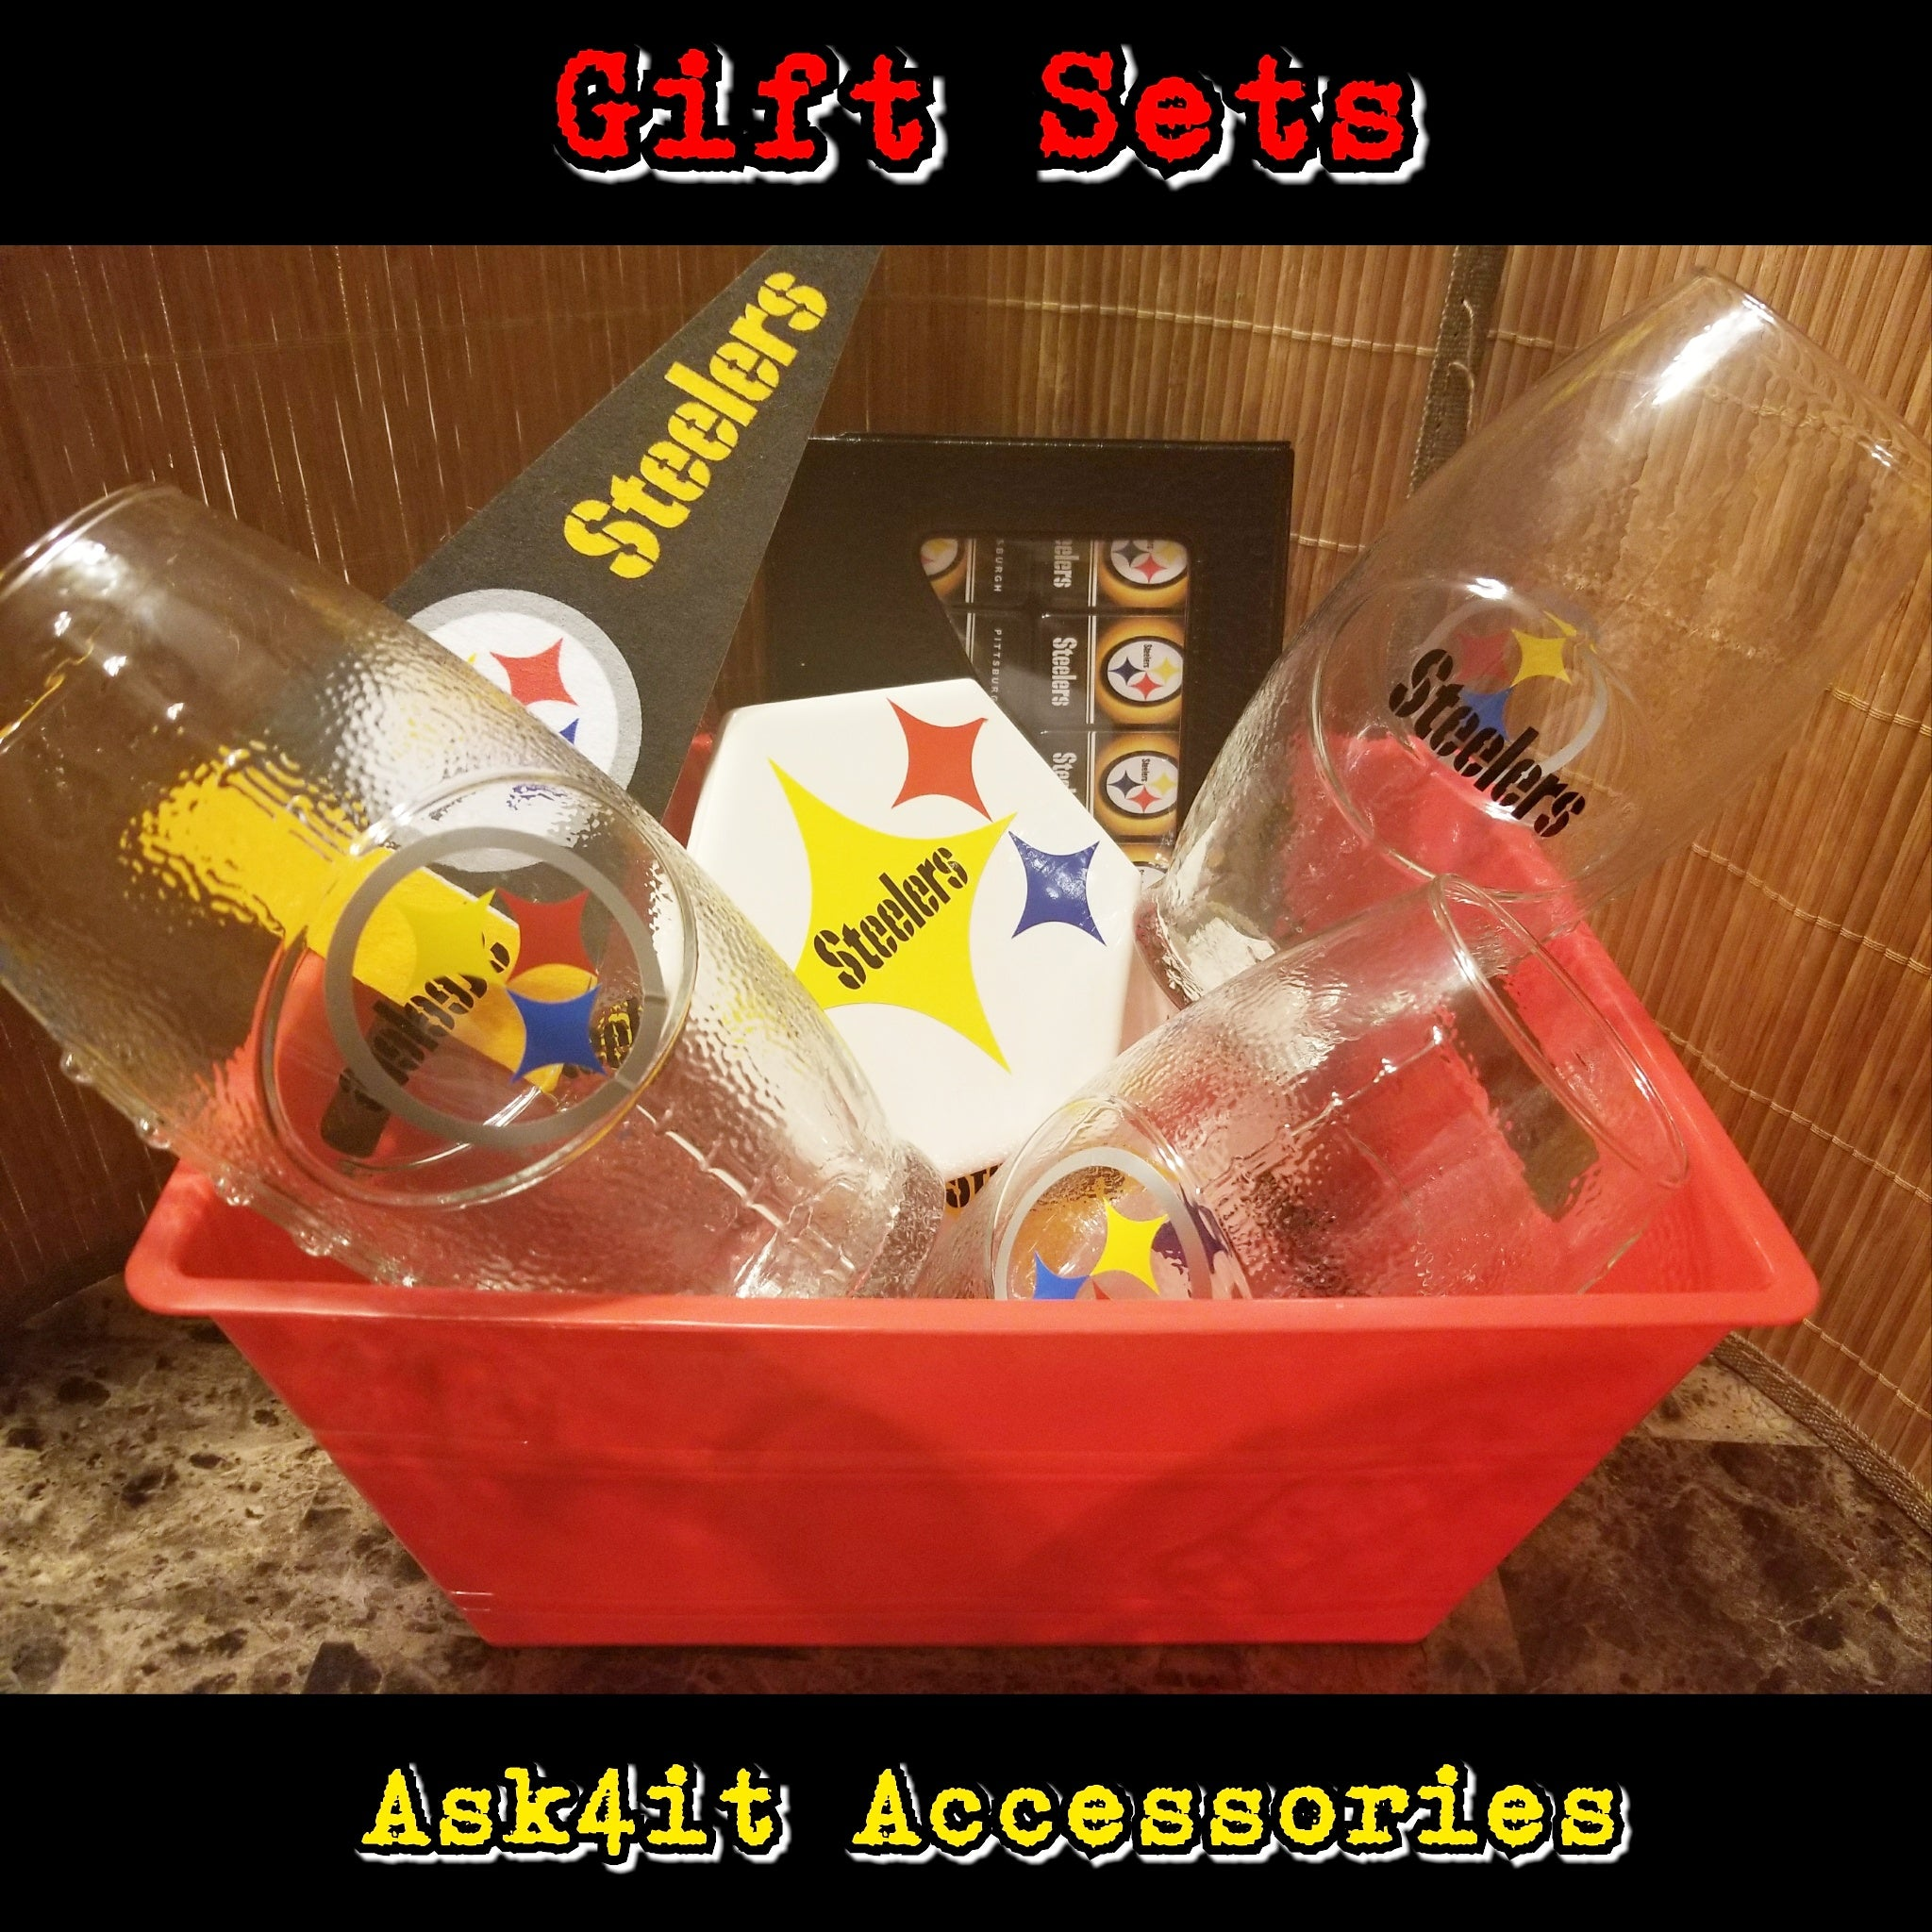 Steelers Gift Set  sc 1 st  Ask4itaccessories & Ask4itaccessories u2014 Steelers Gift Set